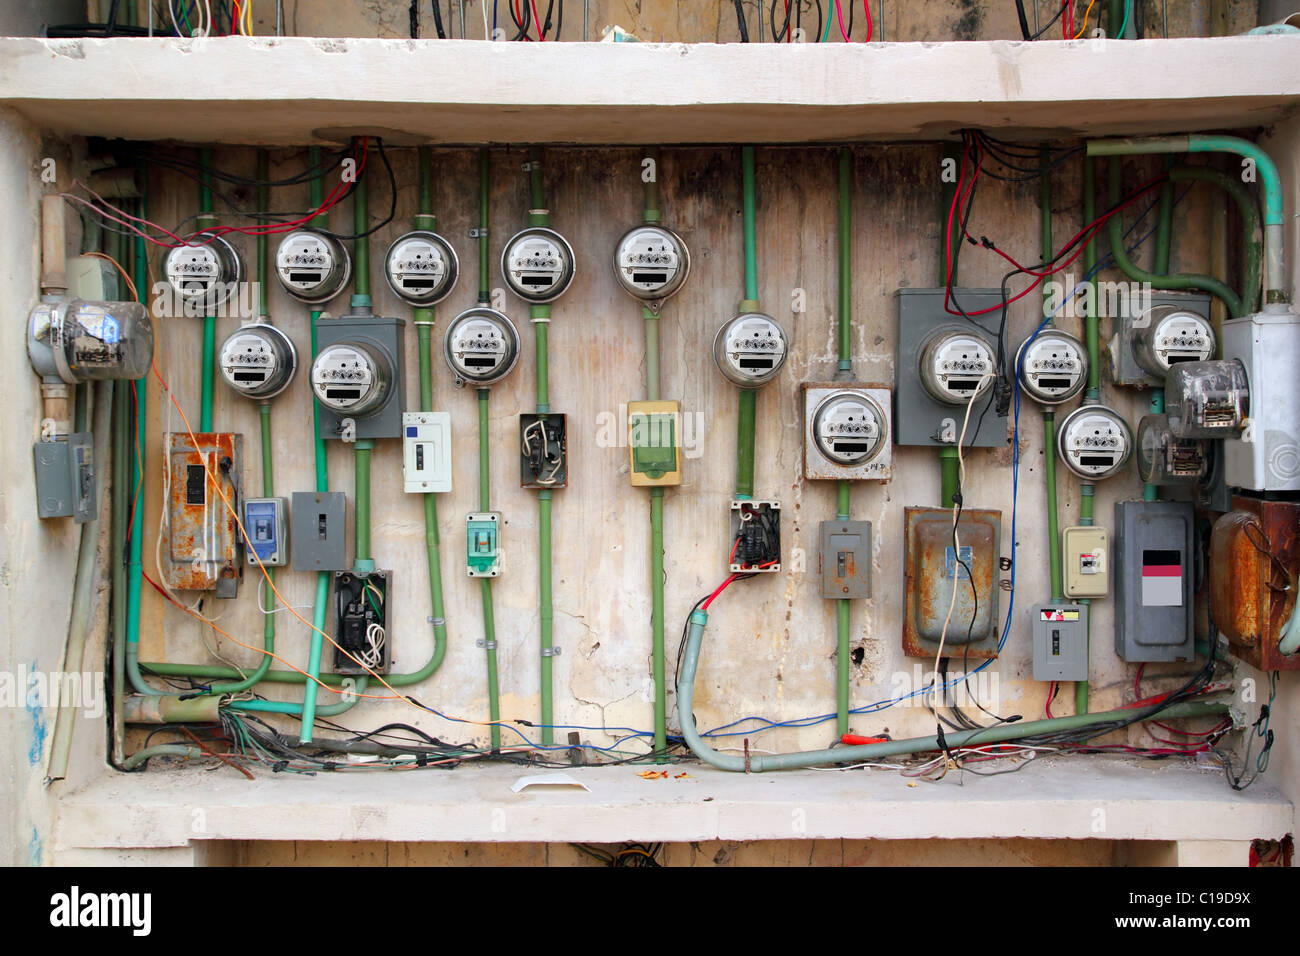 dangerous electric meter messy faulty electrical wiring installation - Stock Image